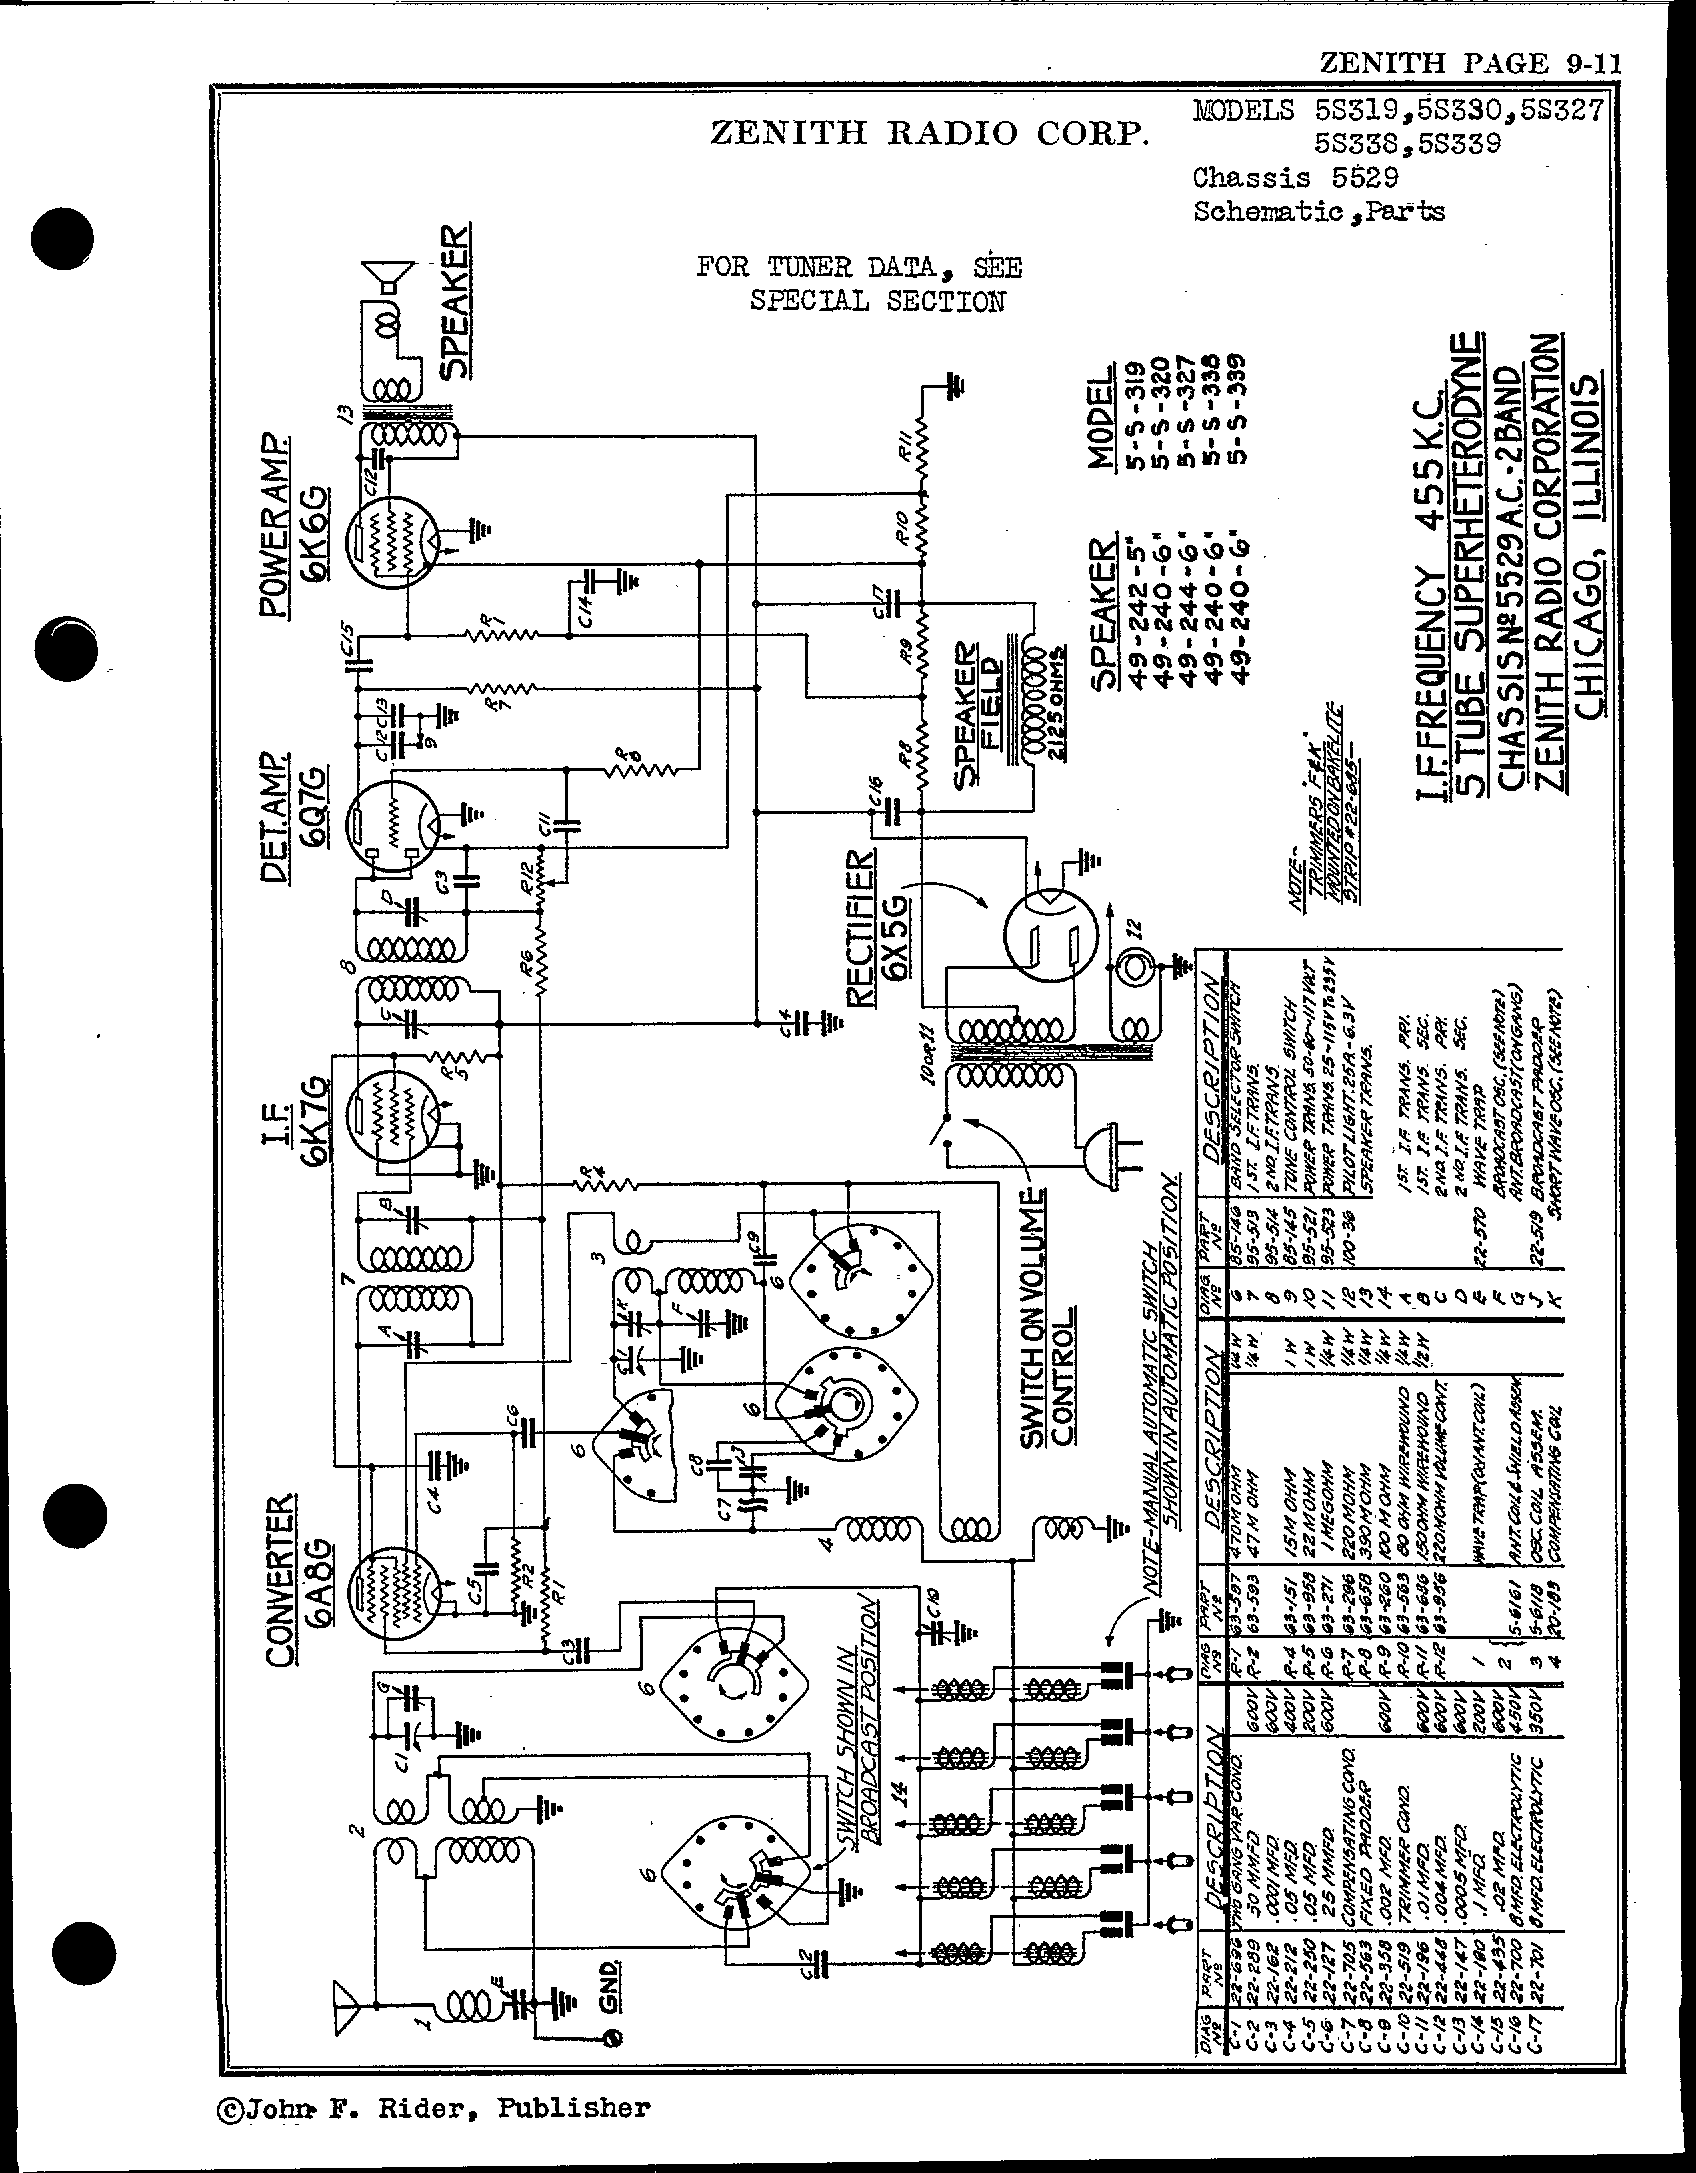 Zenith Radio Corp 5s327 Antique Electronic Supply. Page 1 8329 Kb Rider Manual Volume 9. Wiring. Zenith Tube Radio Schematics N73 1 At Scoala.co